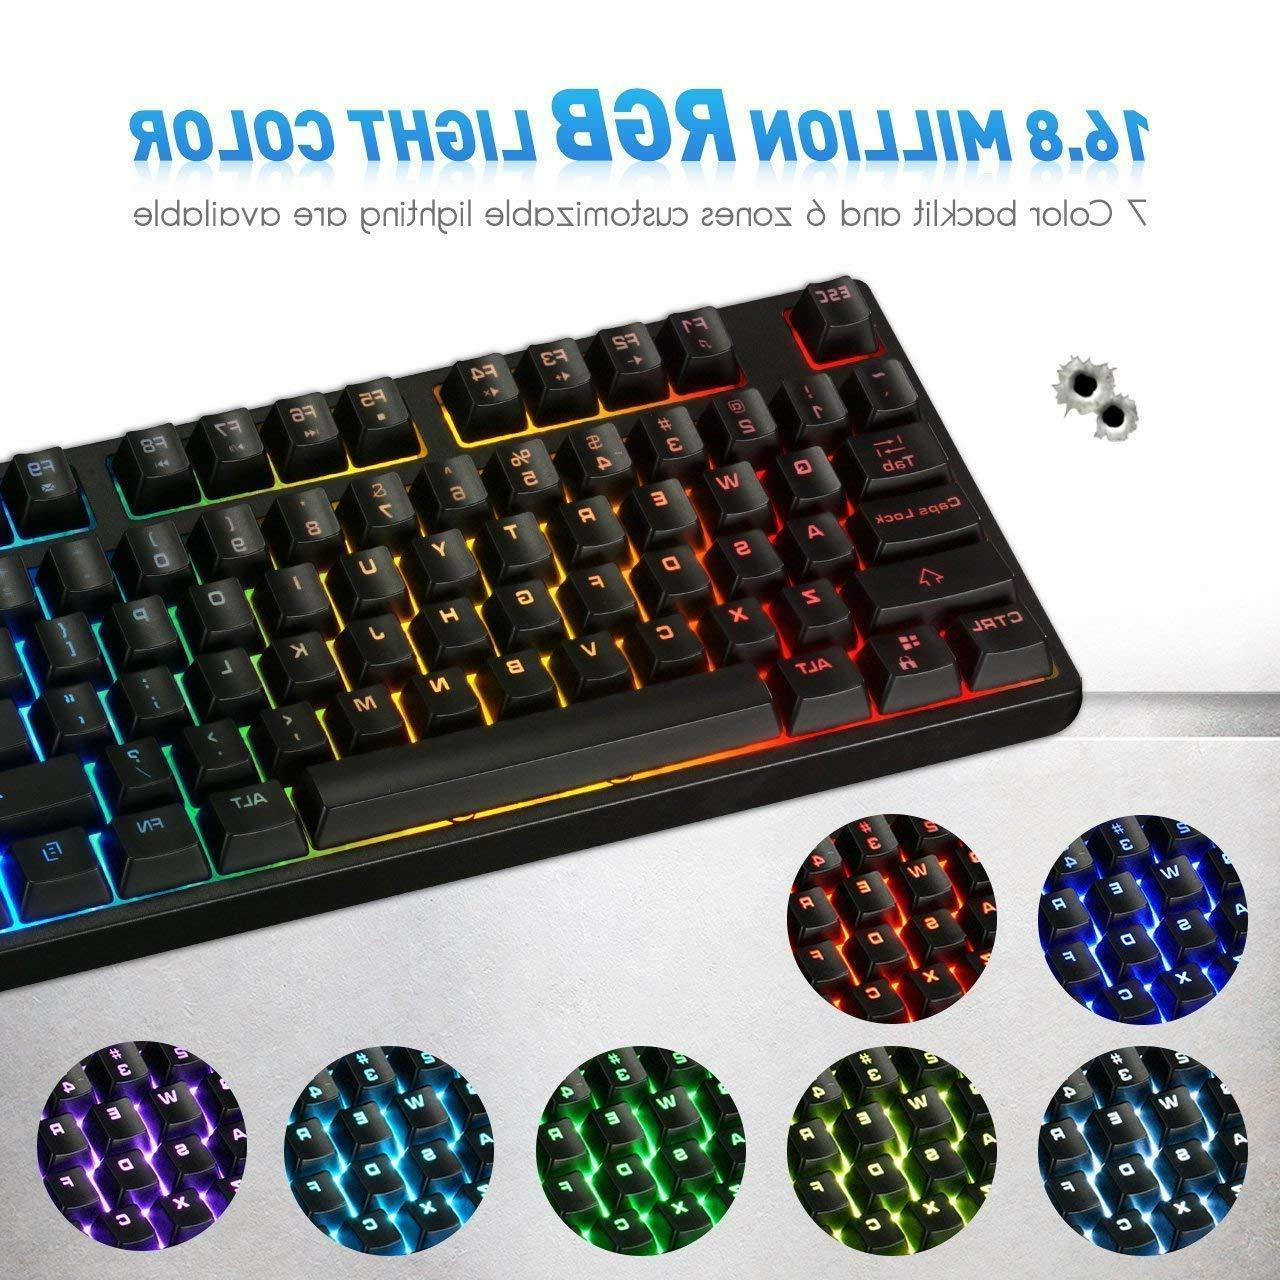 nEW VicTsing Wired Keyboard, Spill-Resistant for